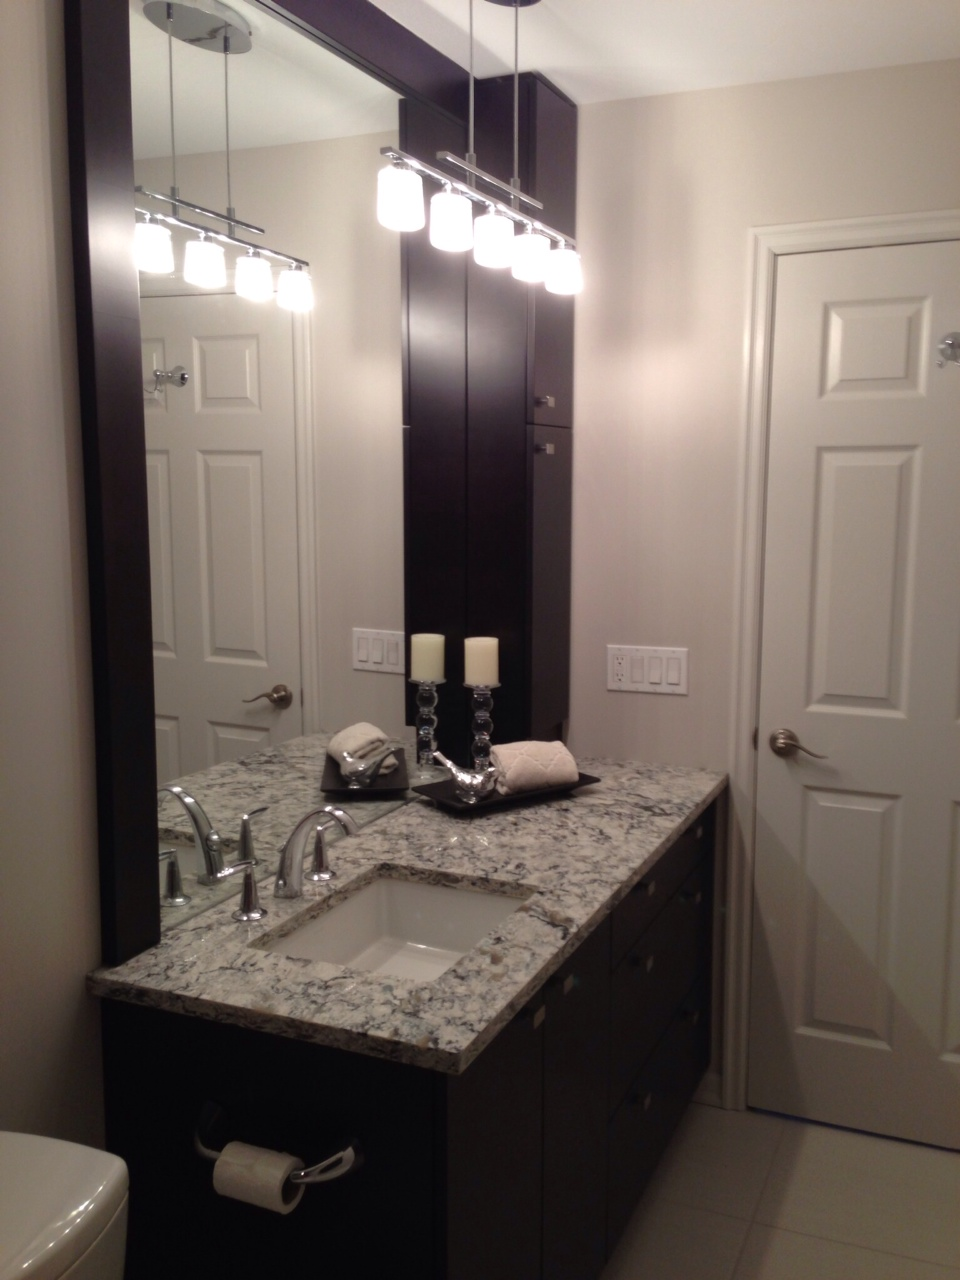 Design Shop Debbie Golub custom vanity bathroom.JPG